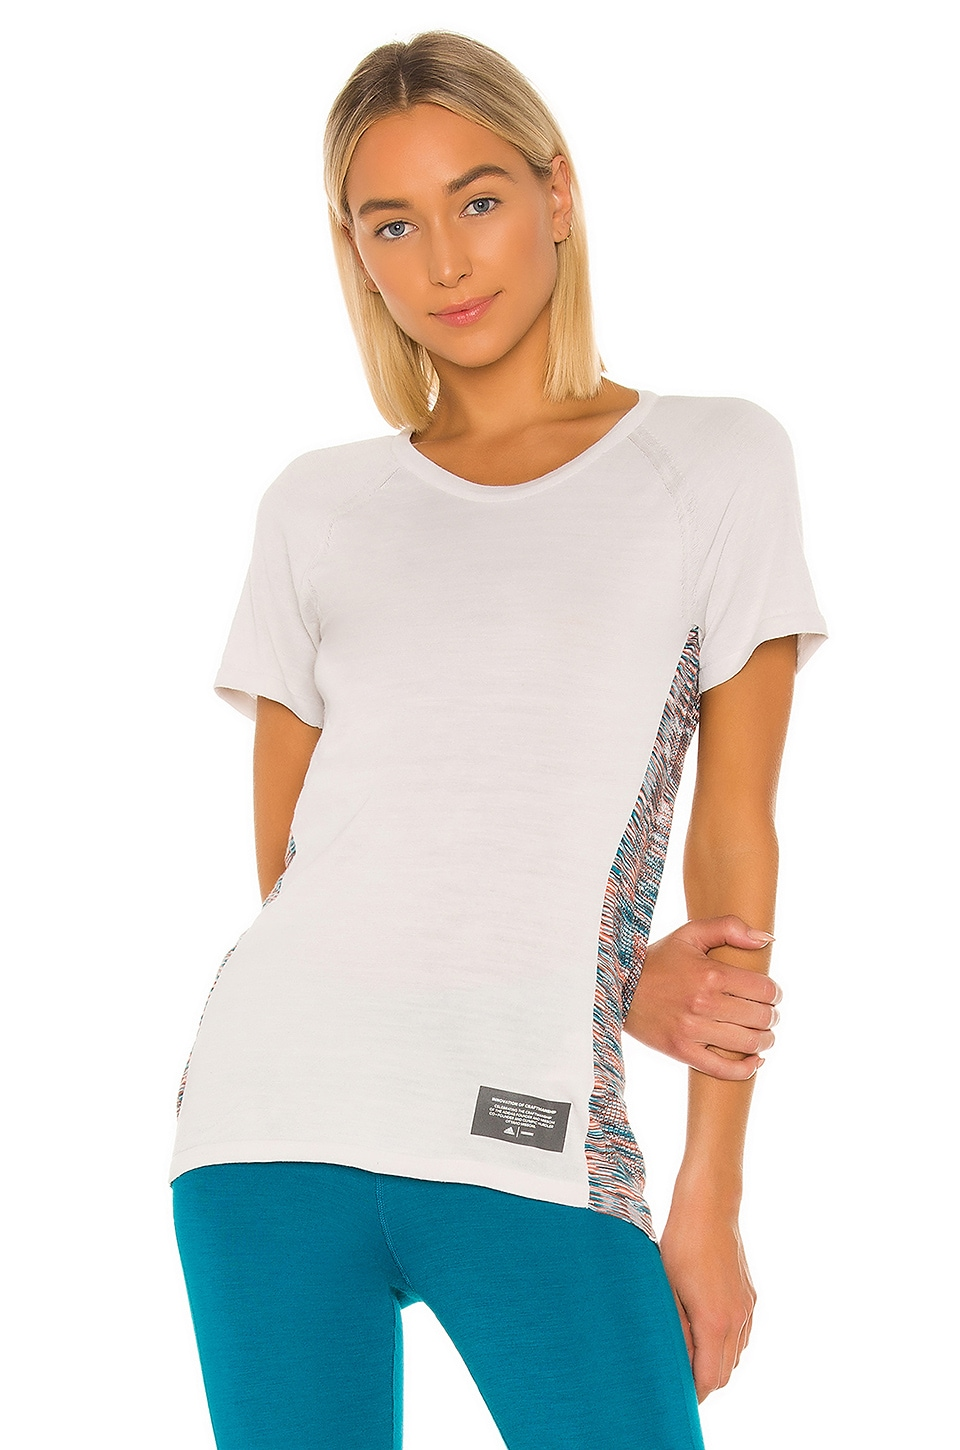 adidas by MISSONI Crew Tee in White, Active Orange & Active Teal